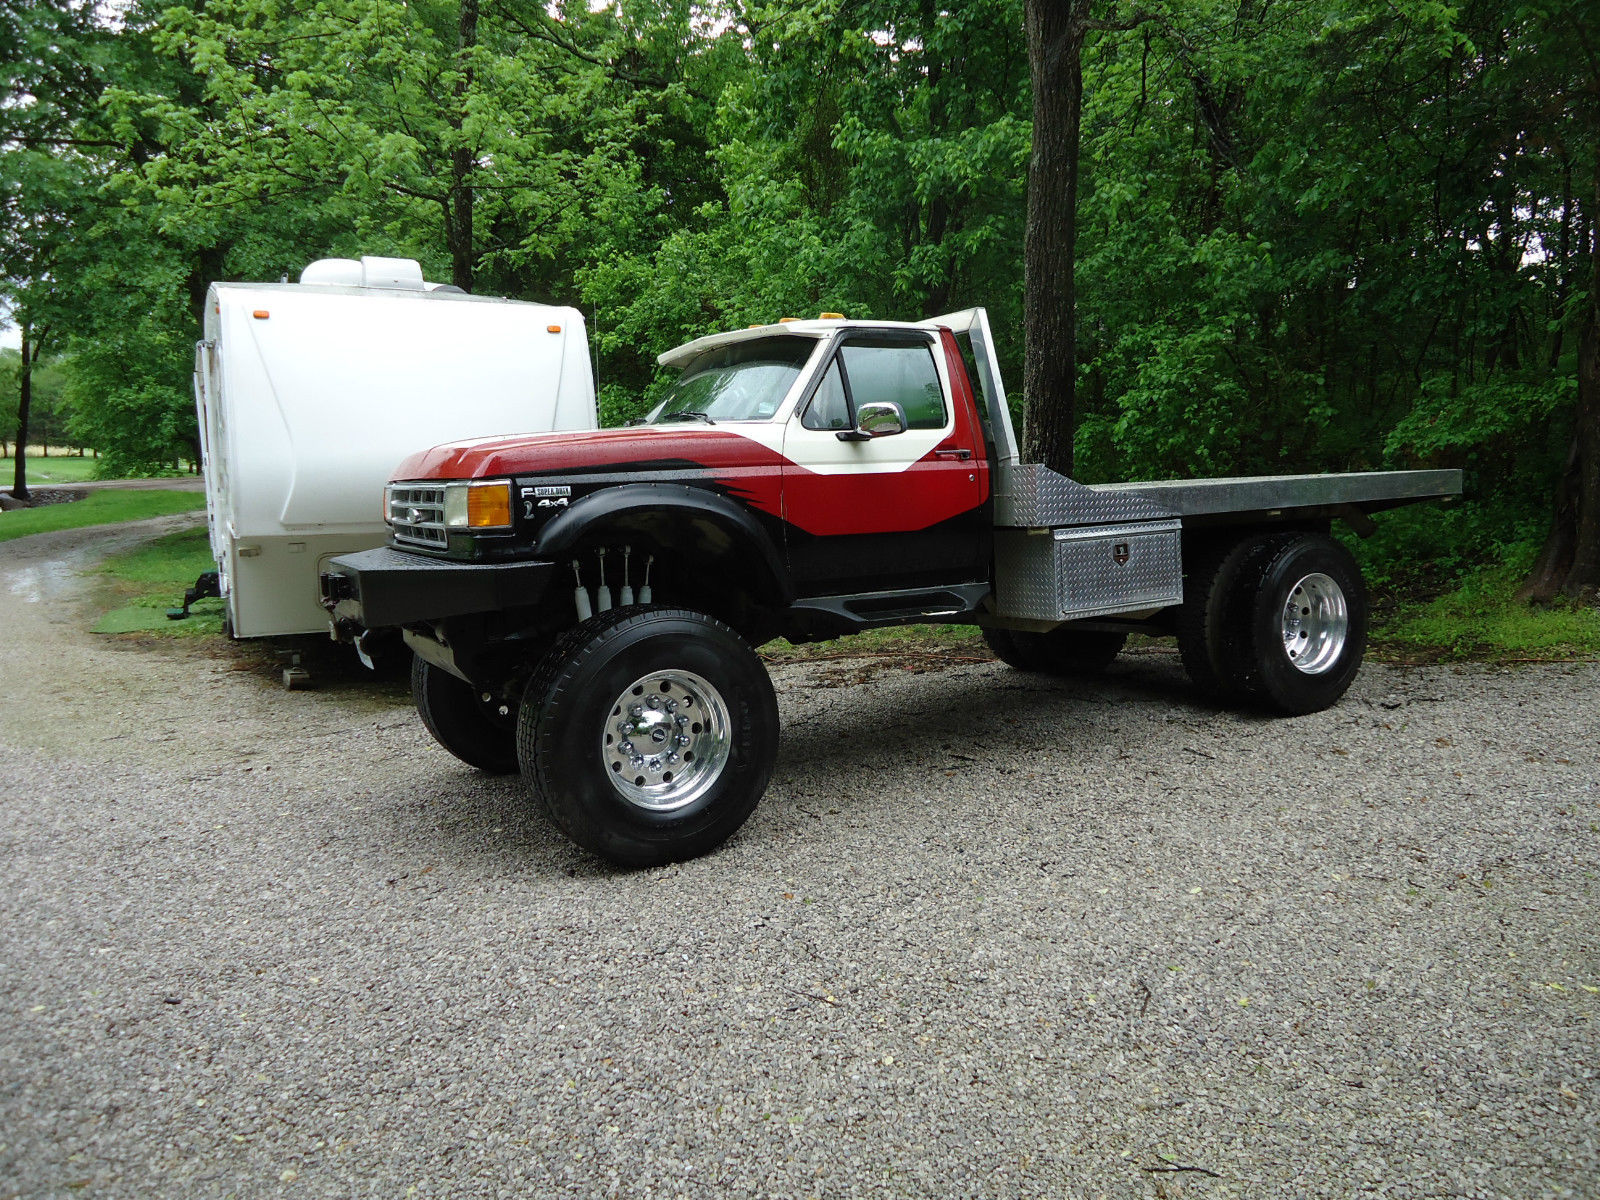 C Ford F And F Super Duty in addition Ford Superduty Aluminum Winch Bumper as well Ford Superduty Rear Bumper Gallery Image also Ford Super Duty  petition X further C Ford F And F Super Duty. on ford super duty front receiver hitch